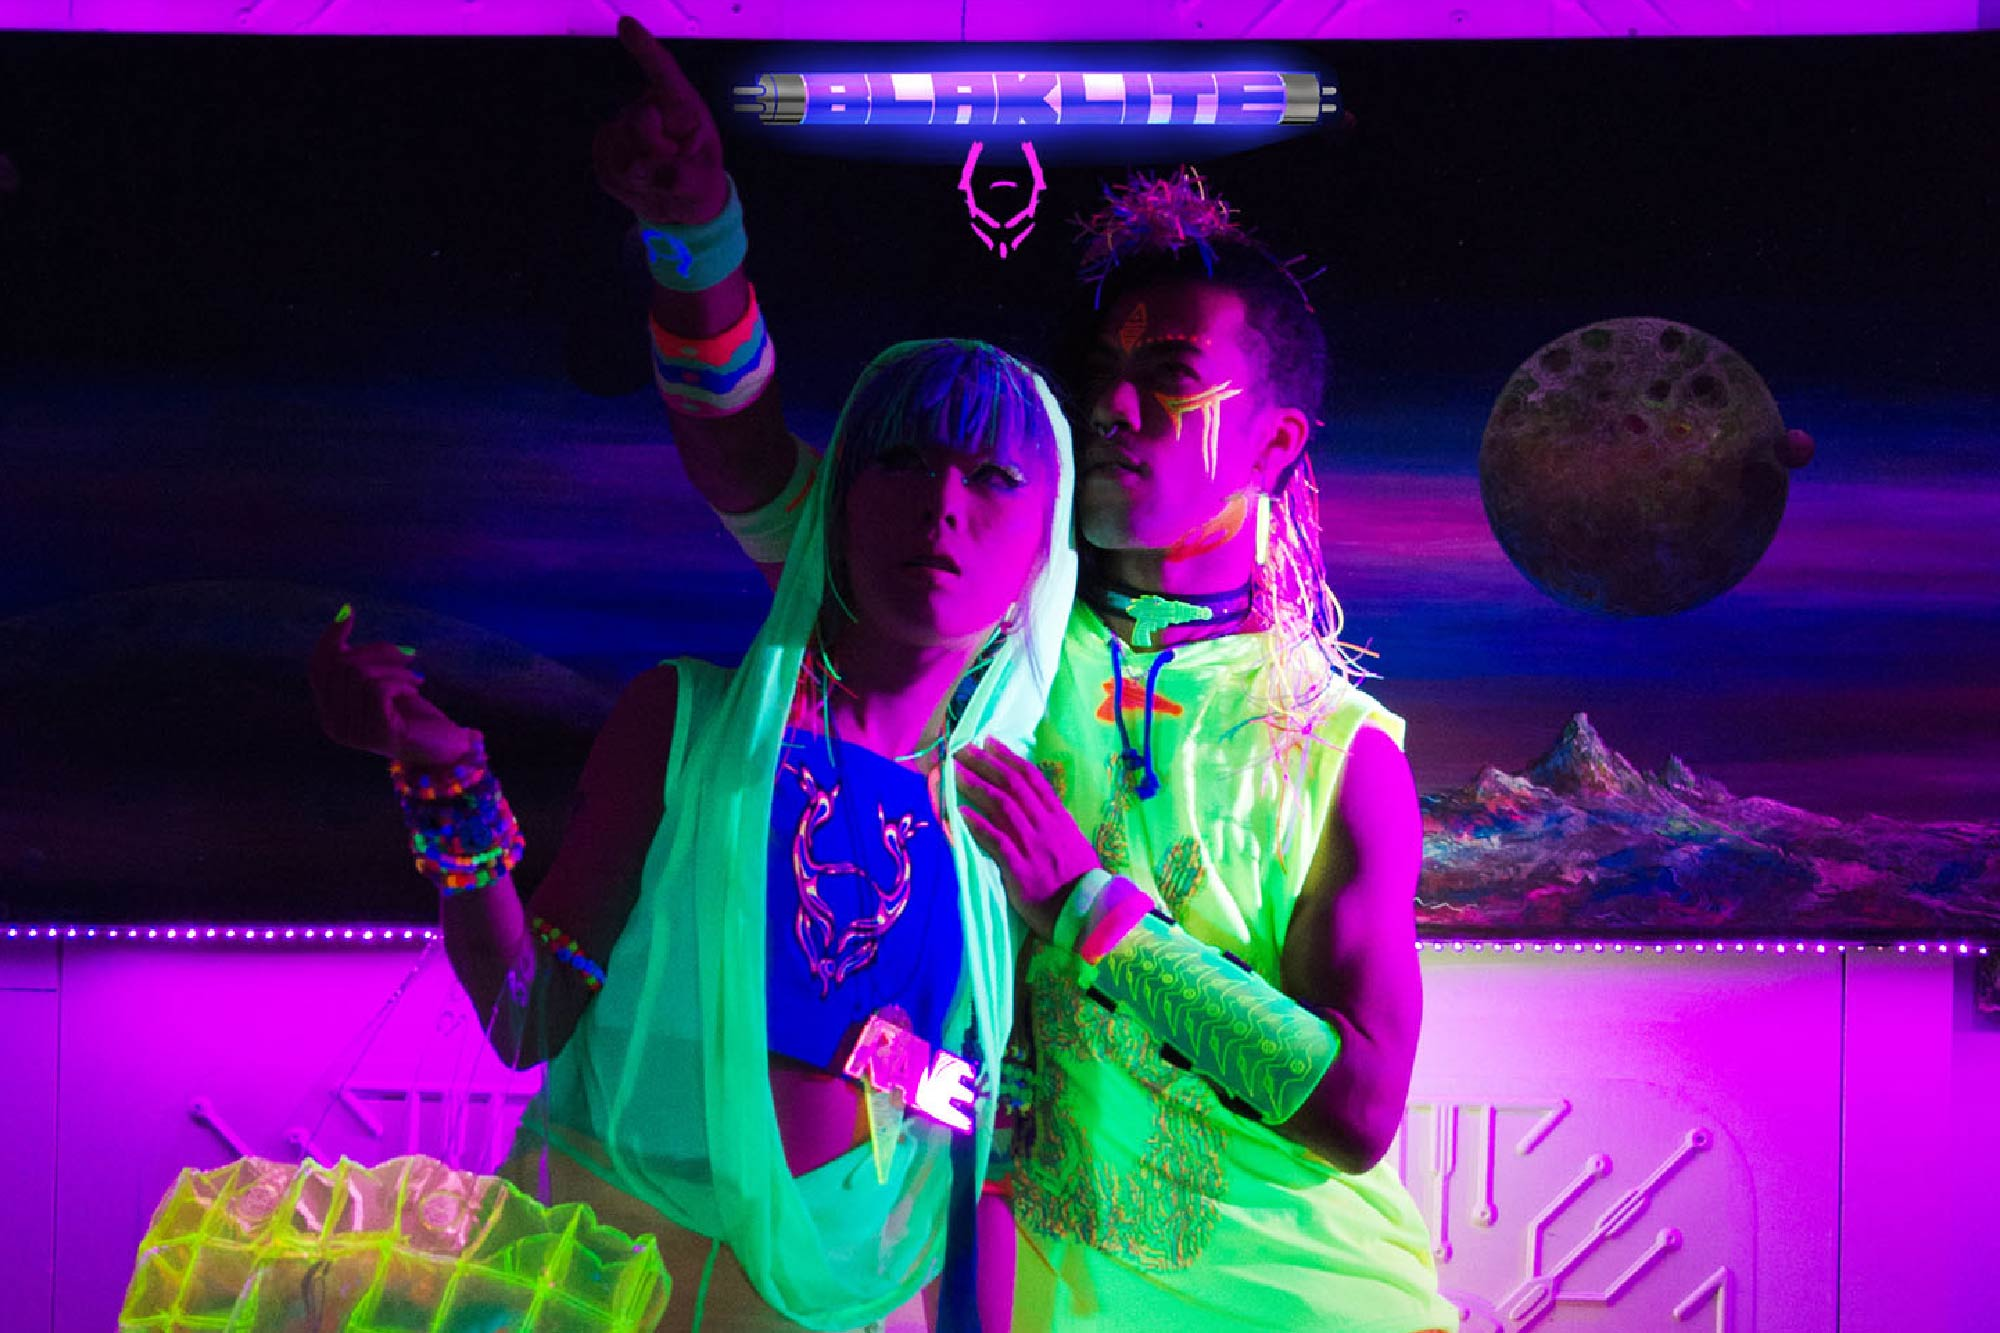 Music video production in London. Fluorescent electro steampunk couple pose under blacklight together.